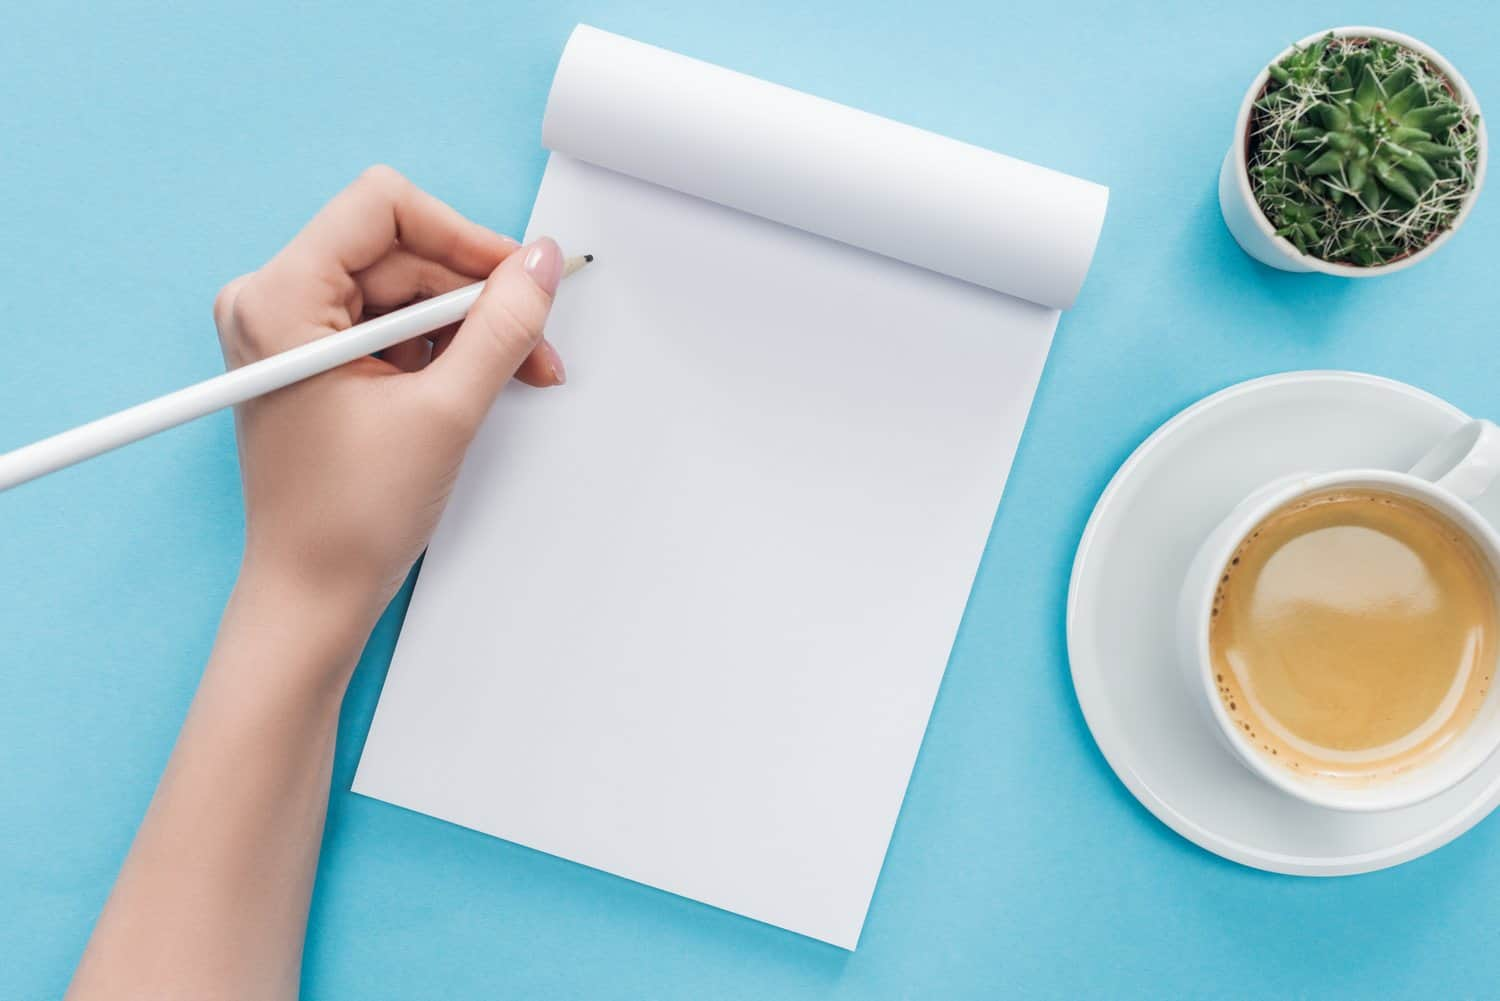 Woman's hand writing on a notepad next to a coffee cup